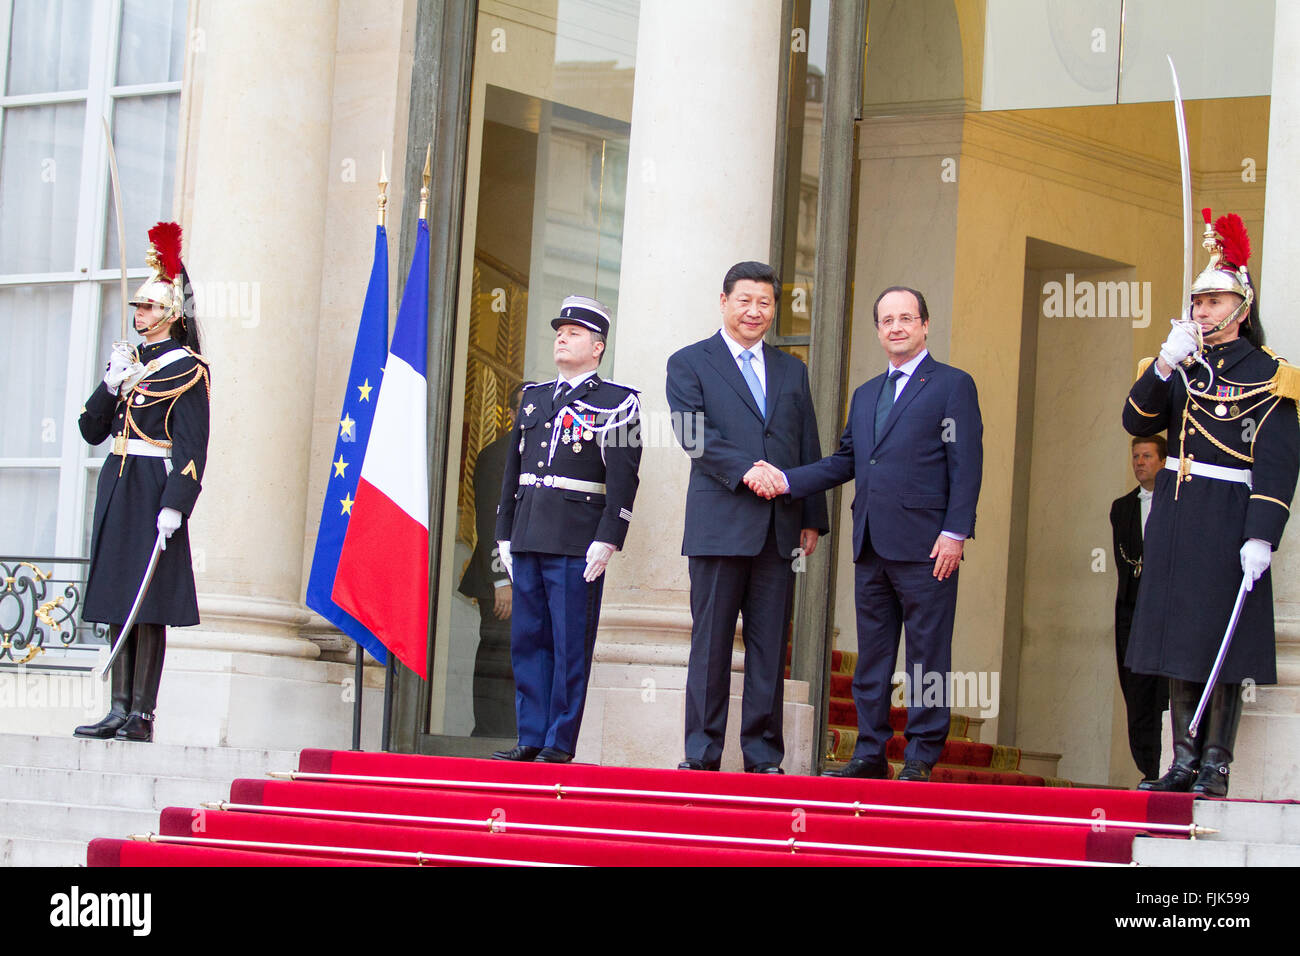 Xi Jinping Chinese President visits Paris with François Hollande at the Elysée Palace - Stock Image